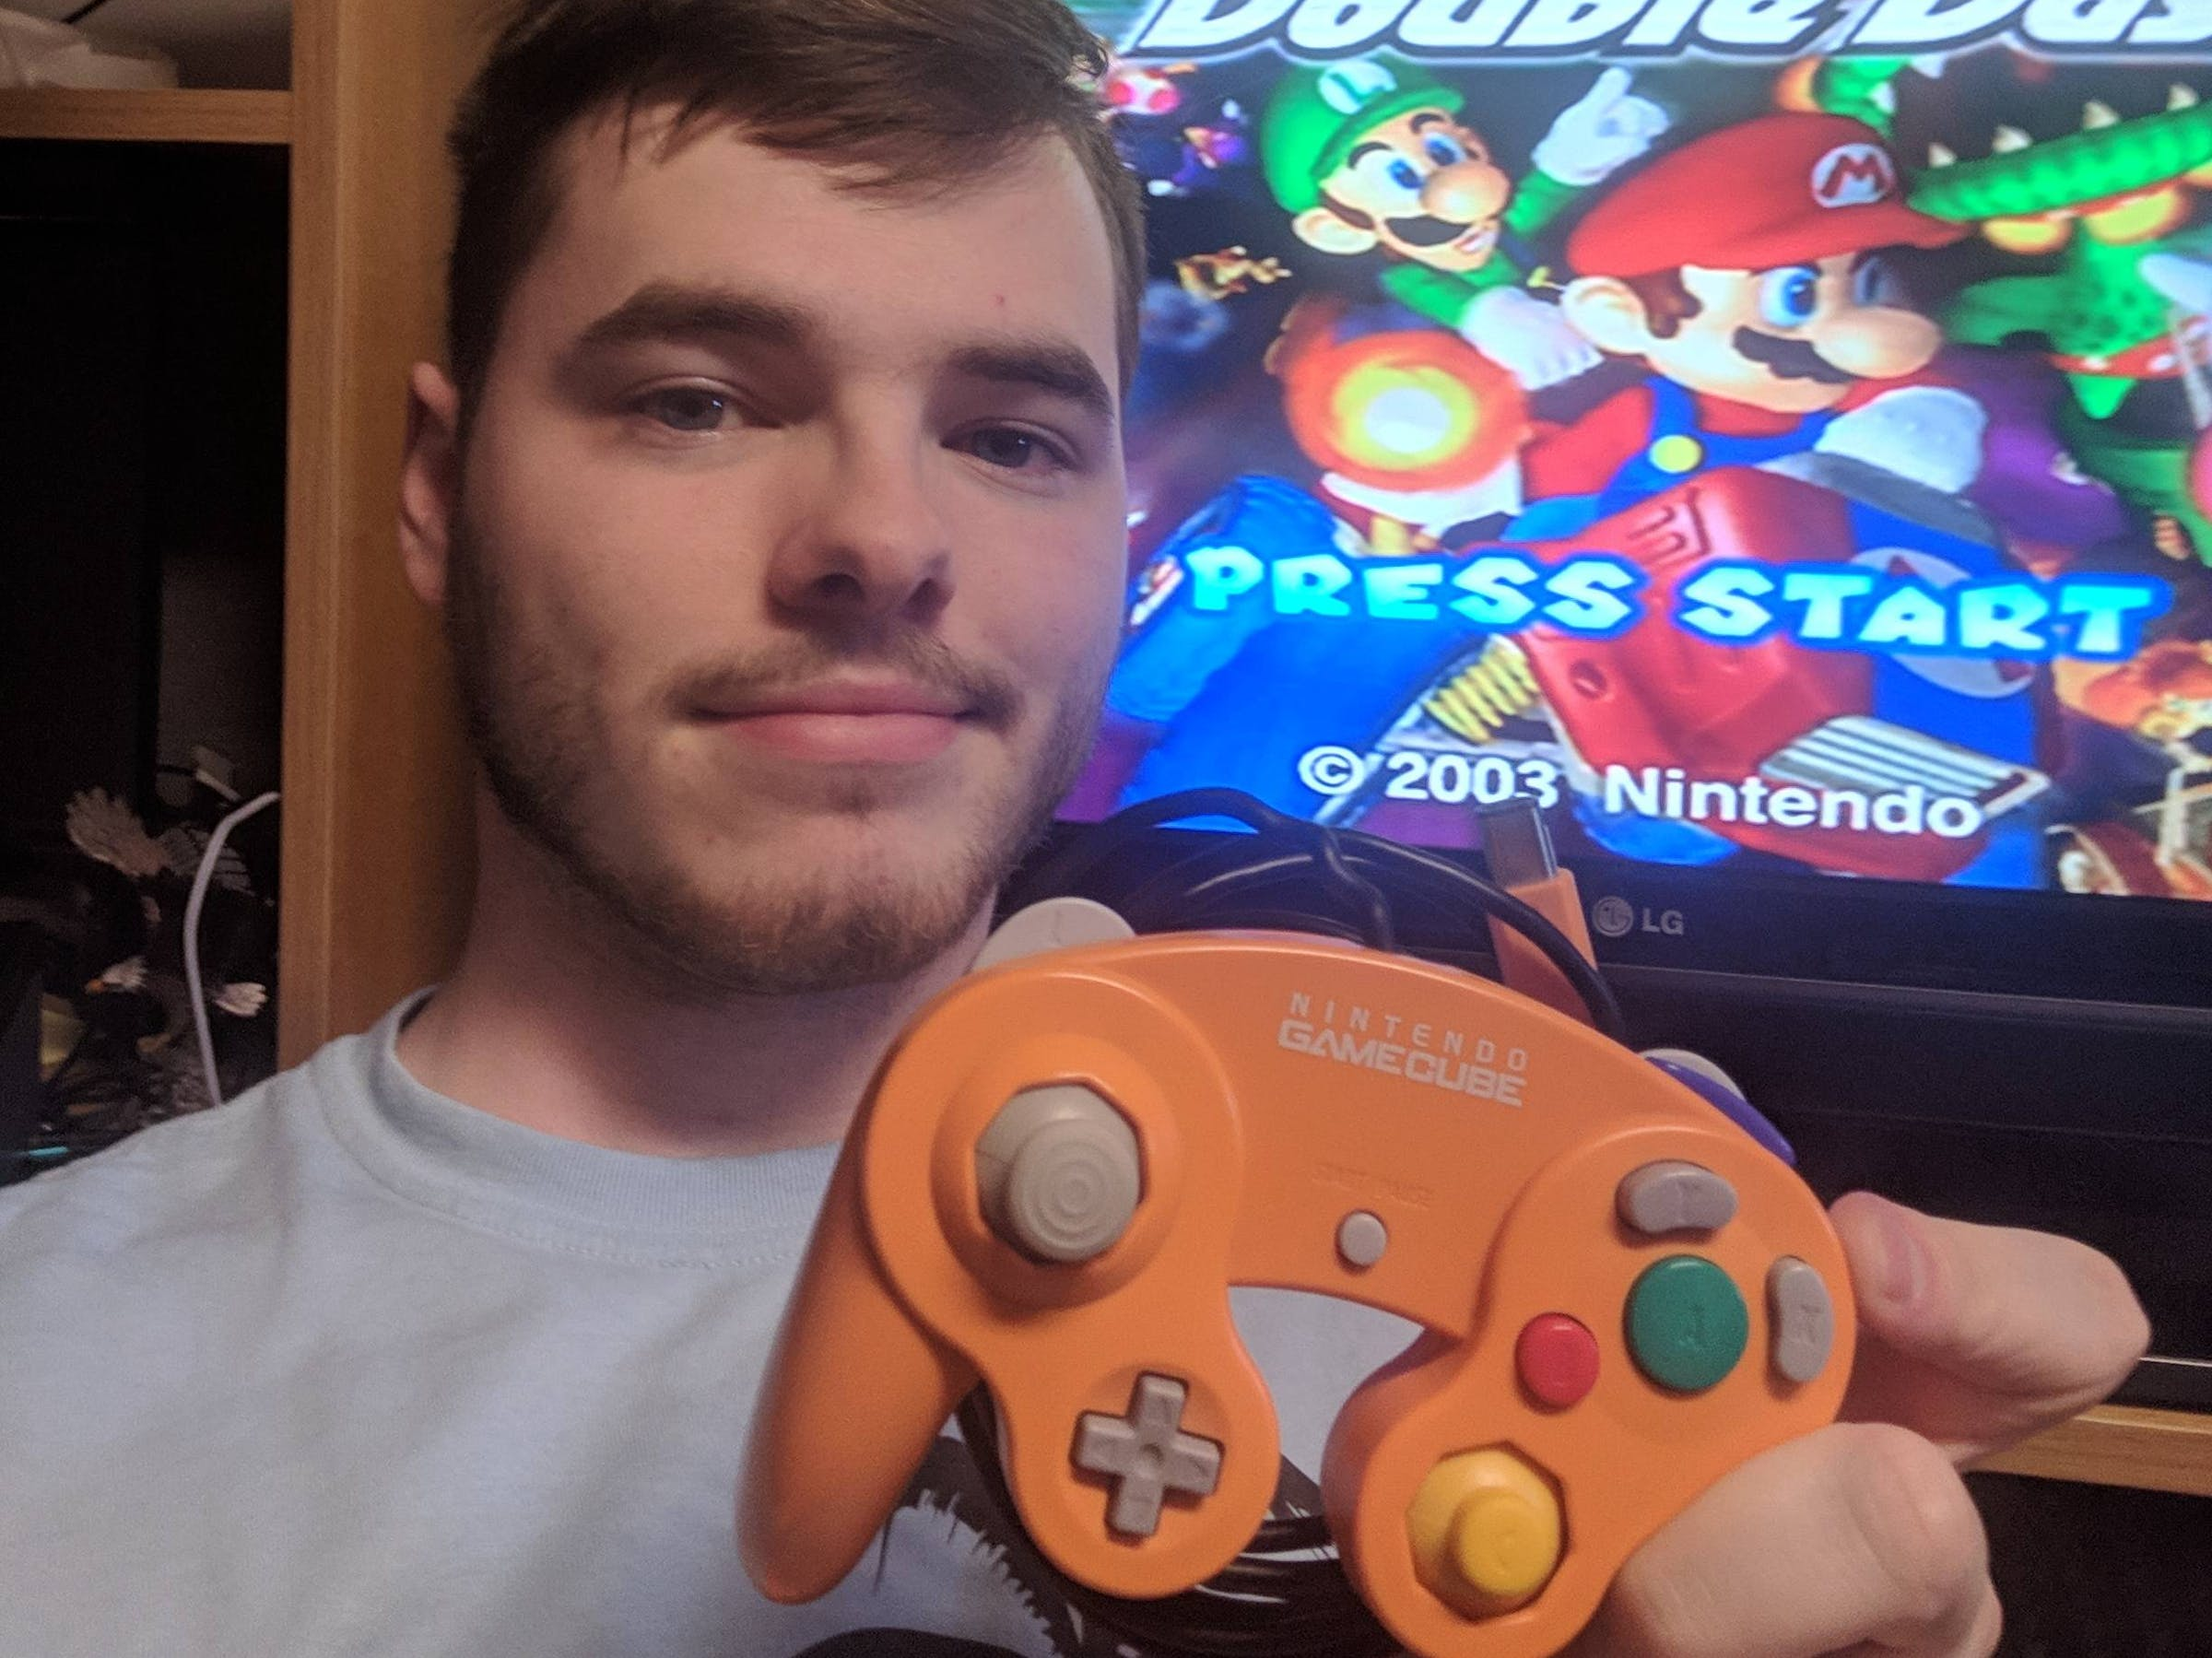 Nearly Two Decades Later, the Vital GameCube Controller Retains Its